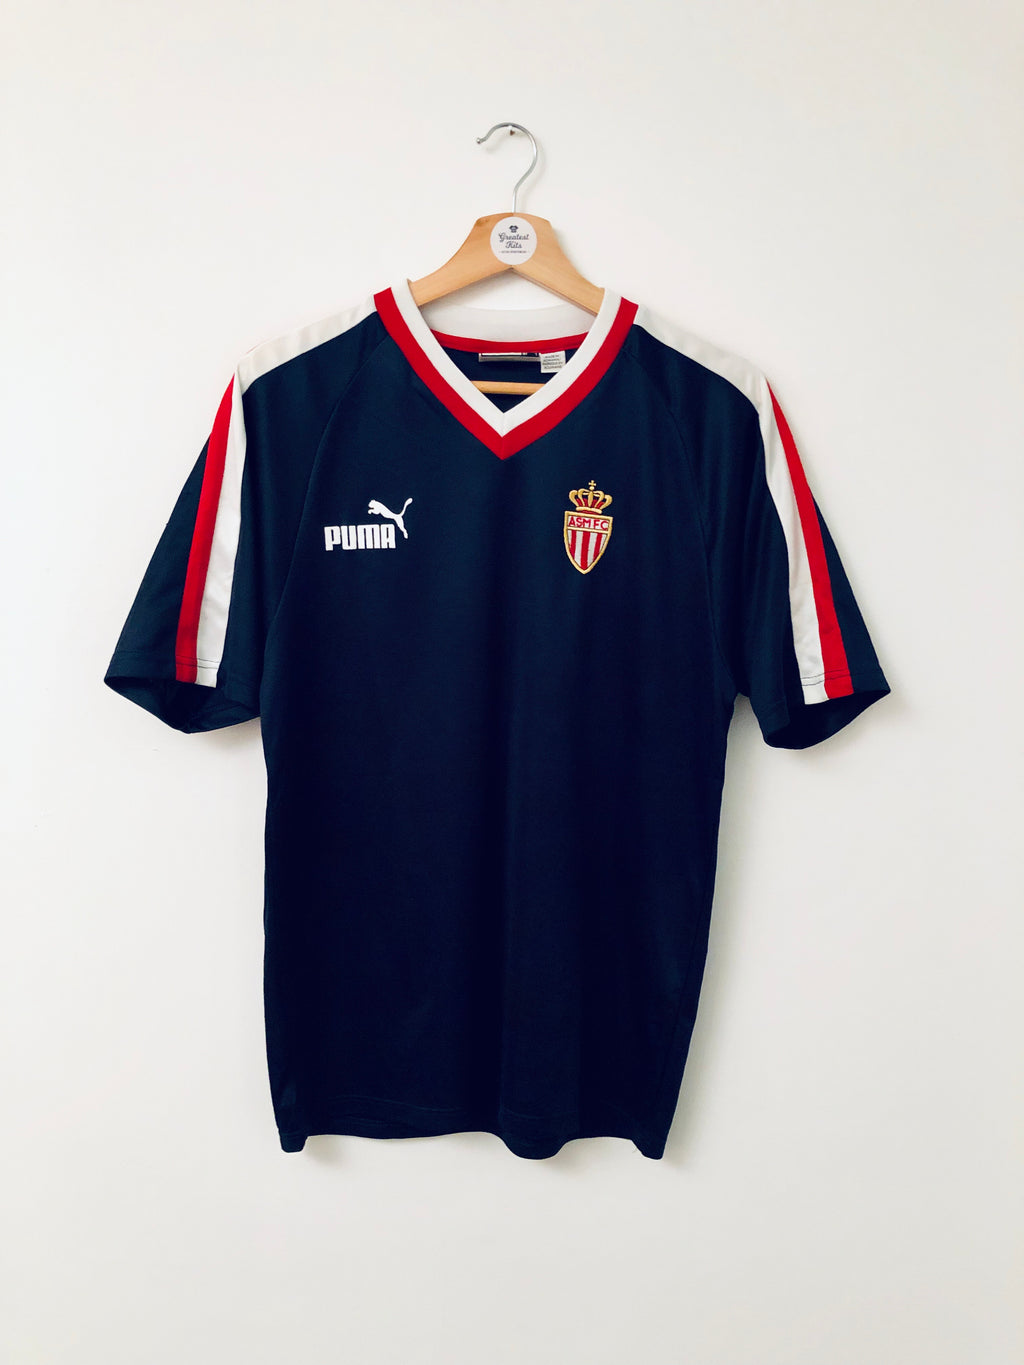 2001/02 Monaco Training Shirt (S) 8.5/10